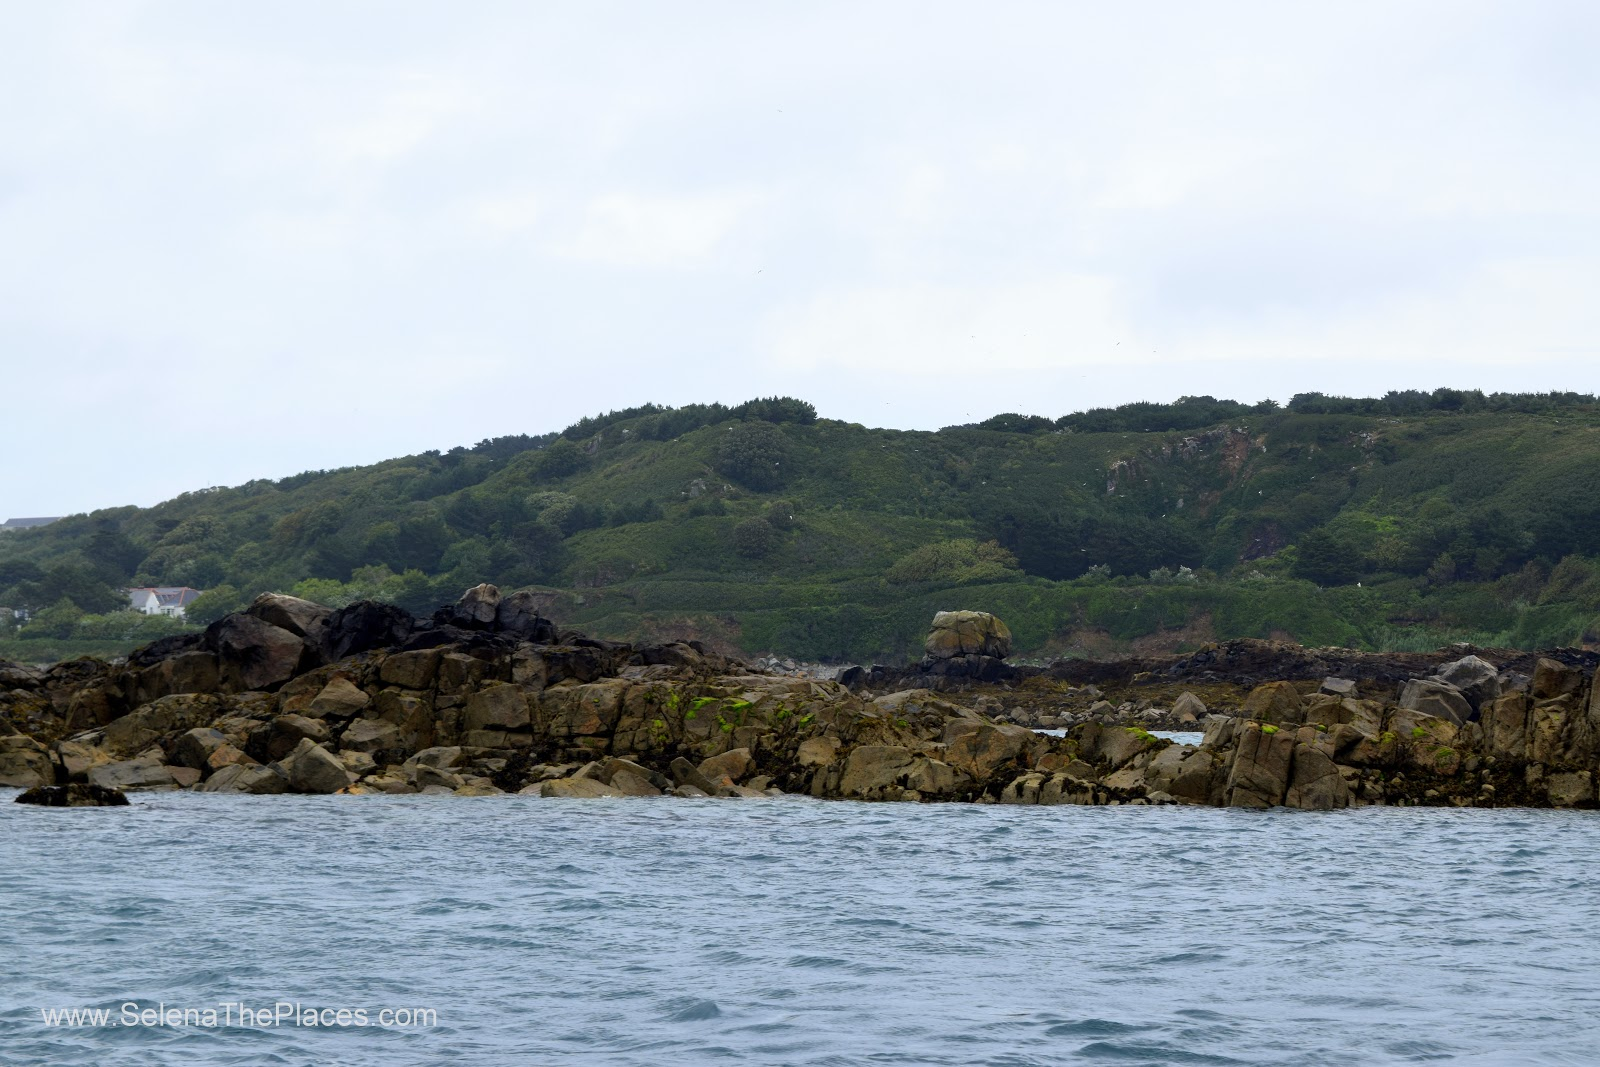 The Channel Island of Herm